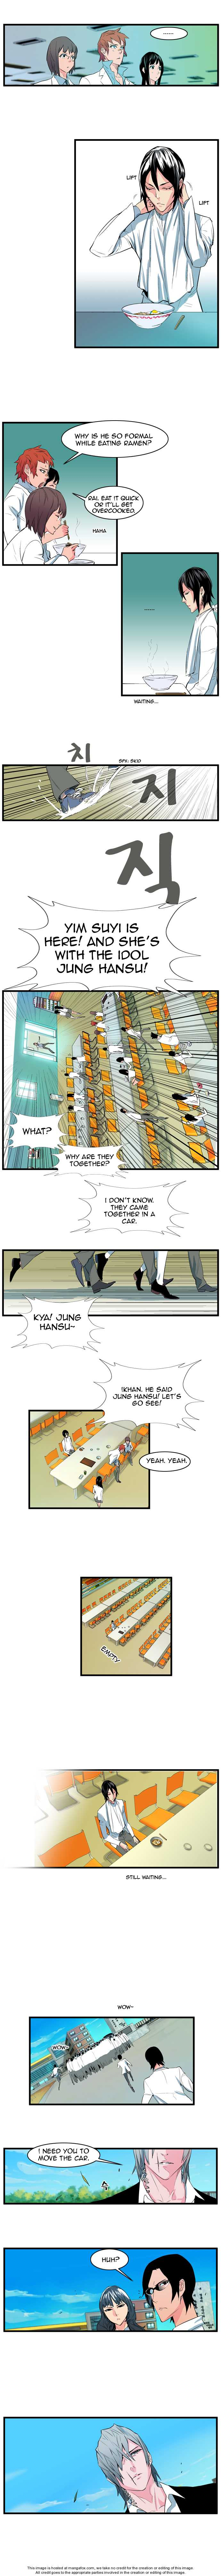 Noblesse 94 Page 3